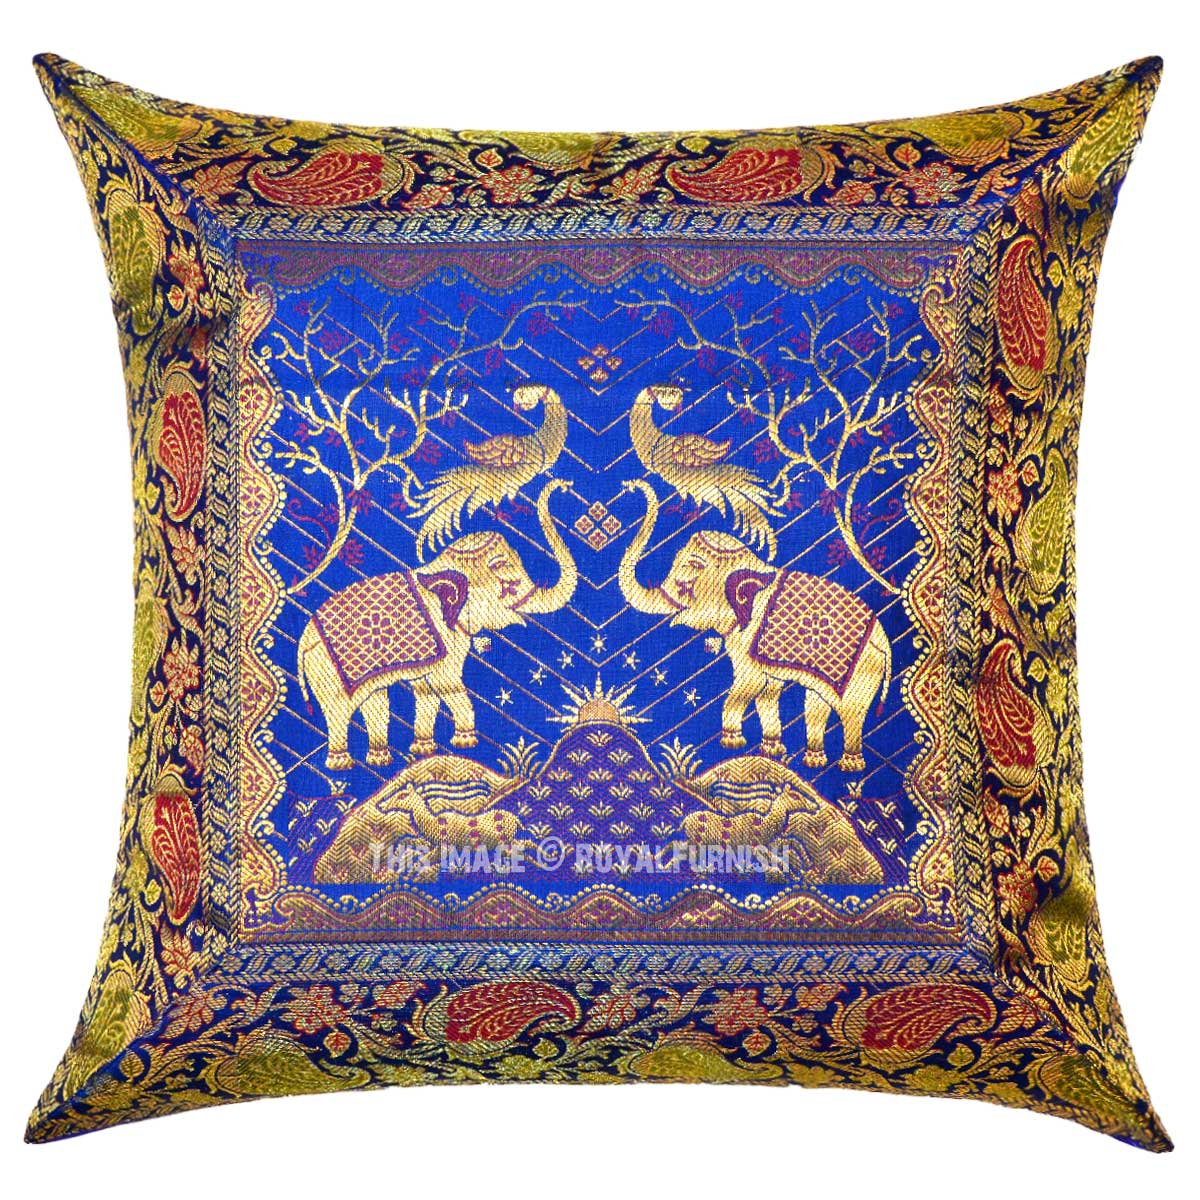 72 inch sofa bed surefit t cushion covers blue two elephants and birds featuring decorative silk ...